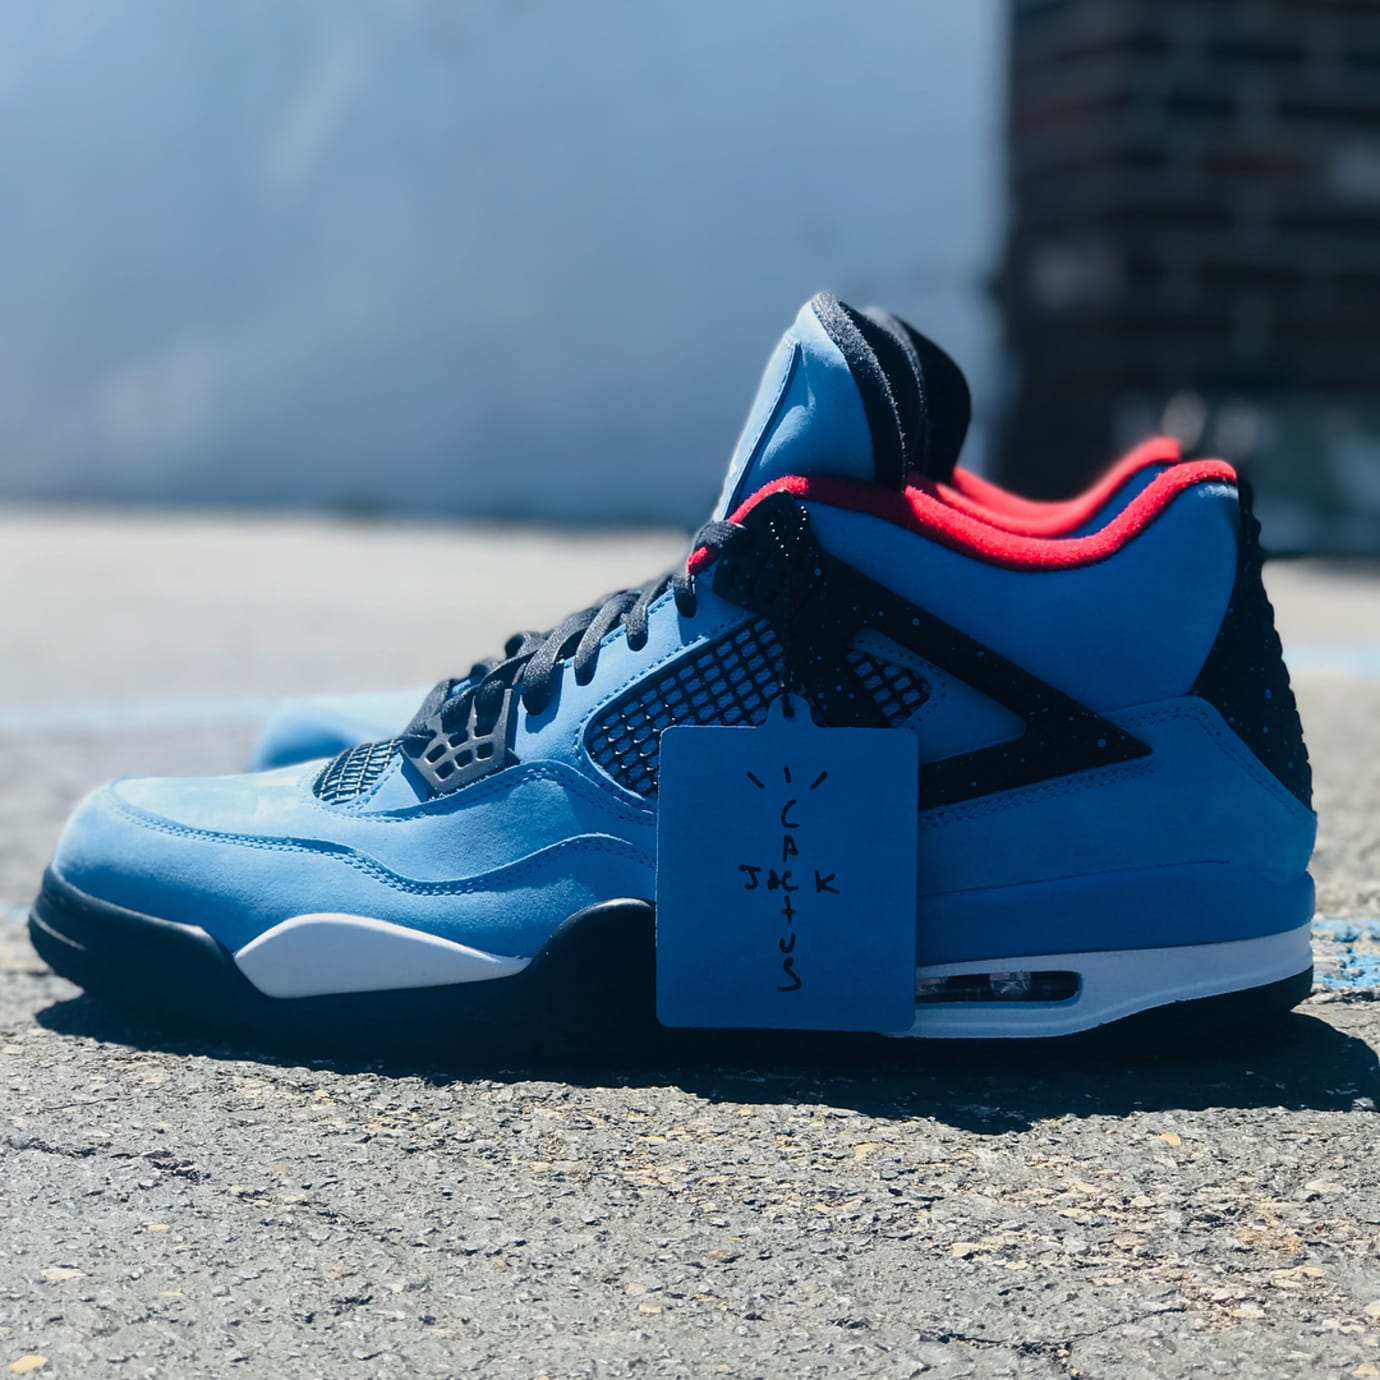 553856ee710b9 Travis Scott x Air Jordan 4  Houston Oilers  308497-406 Release Date ...